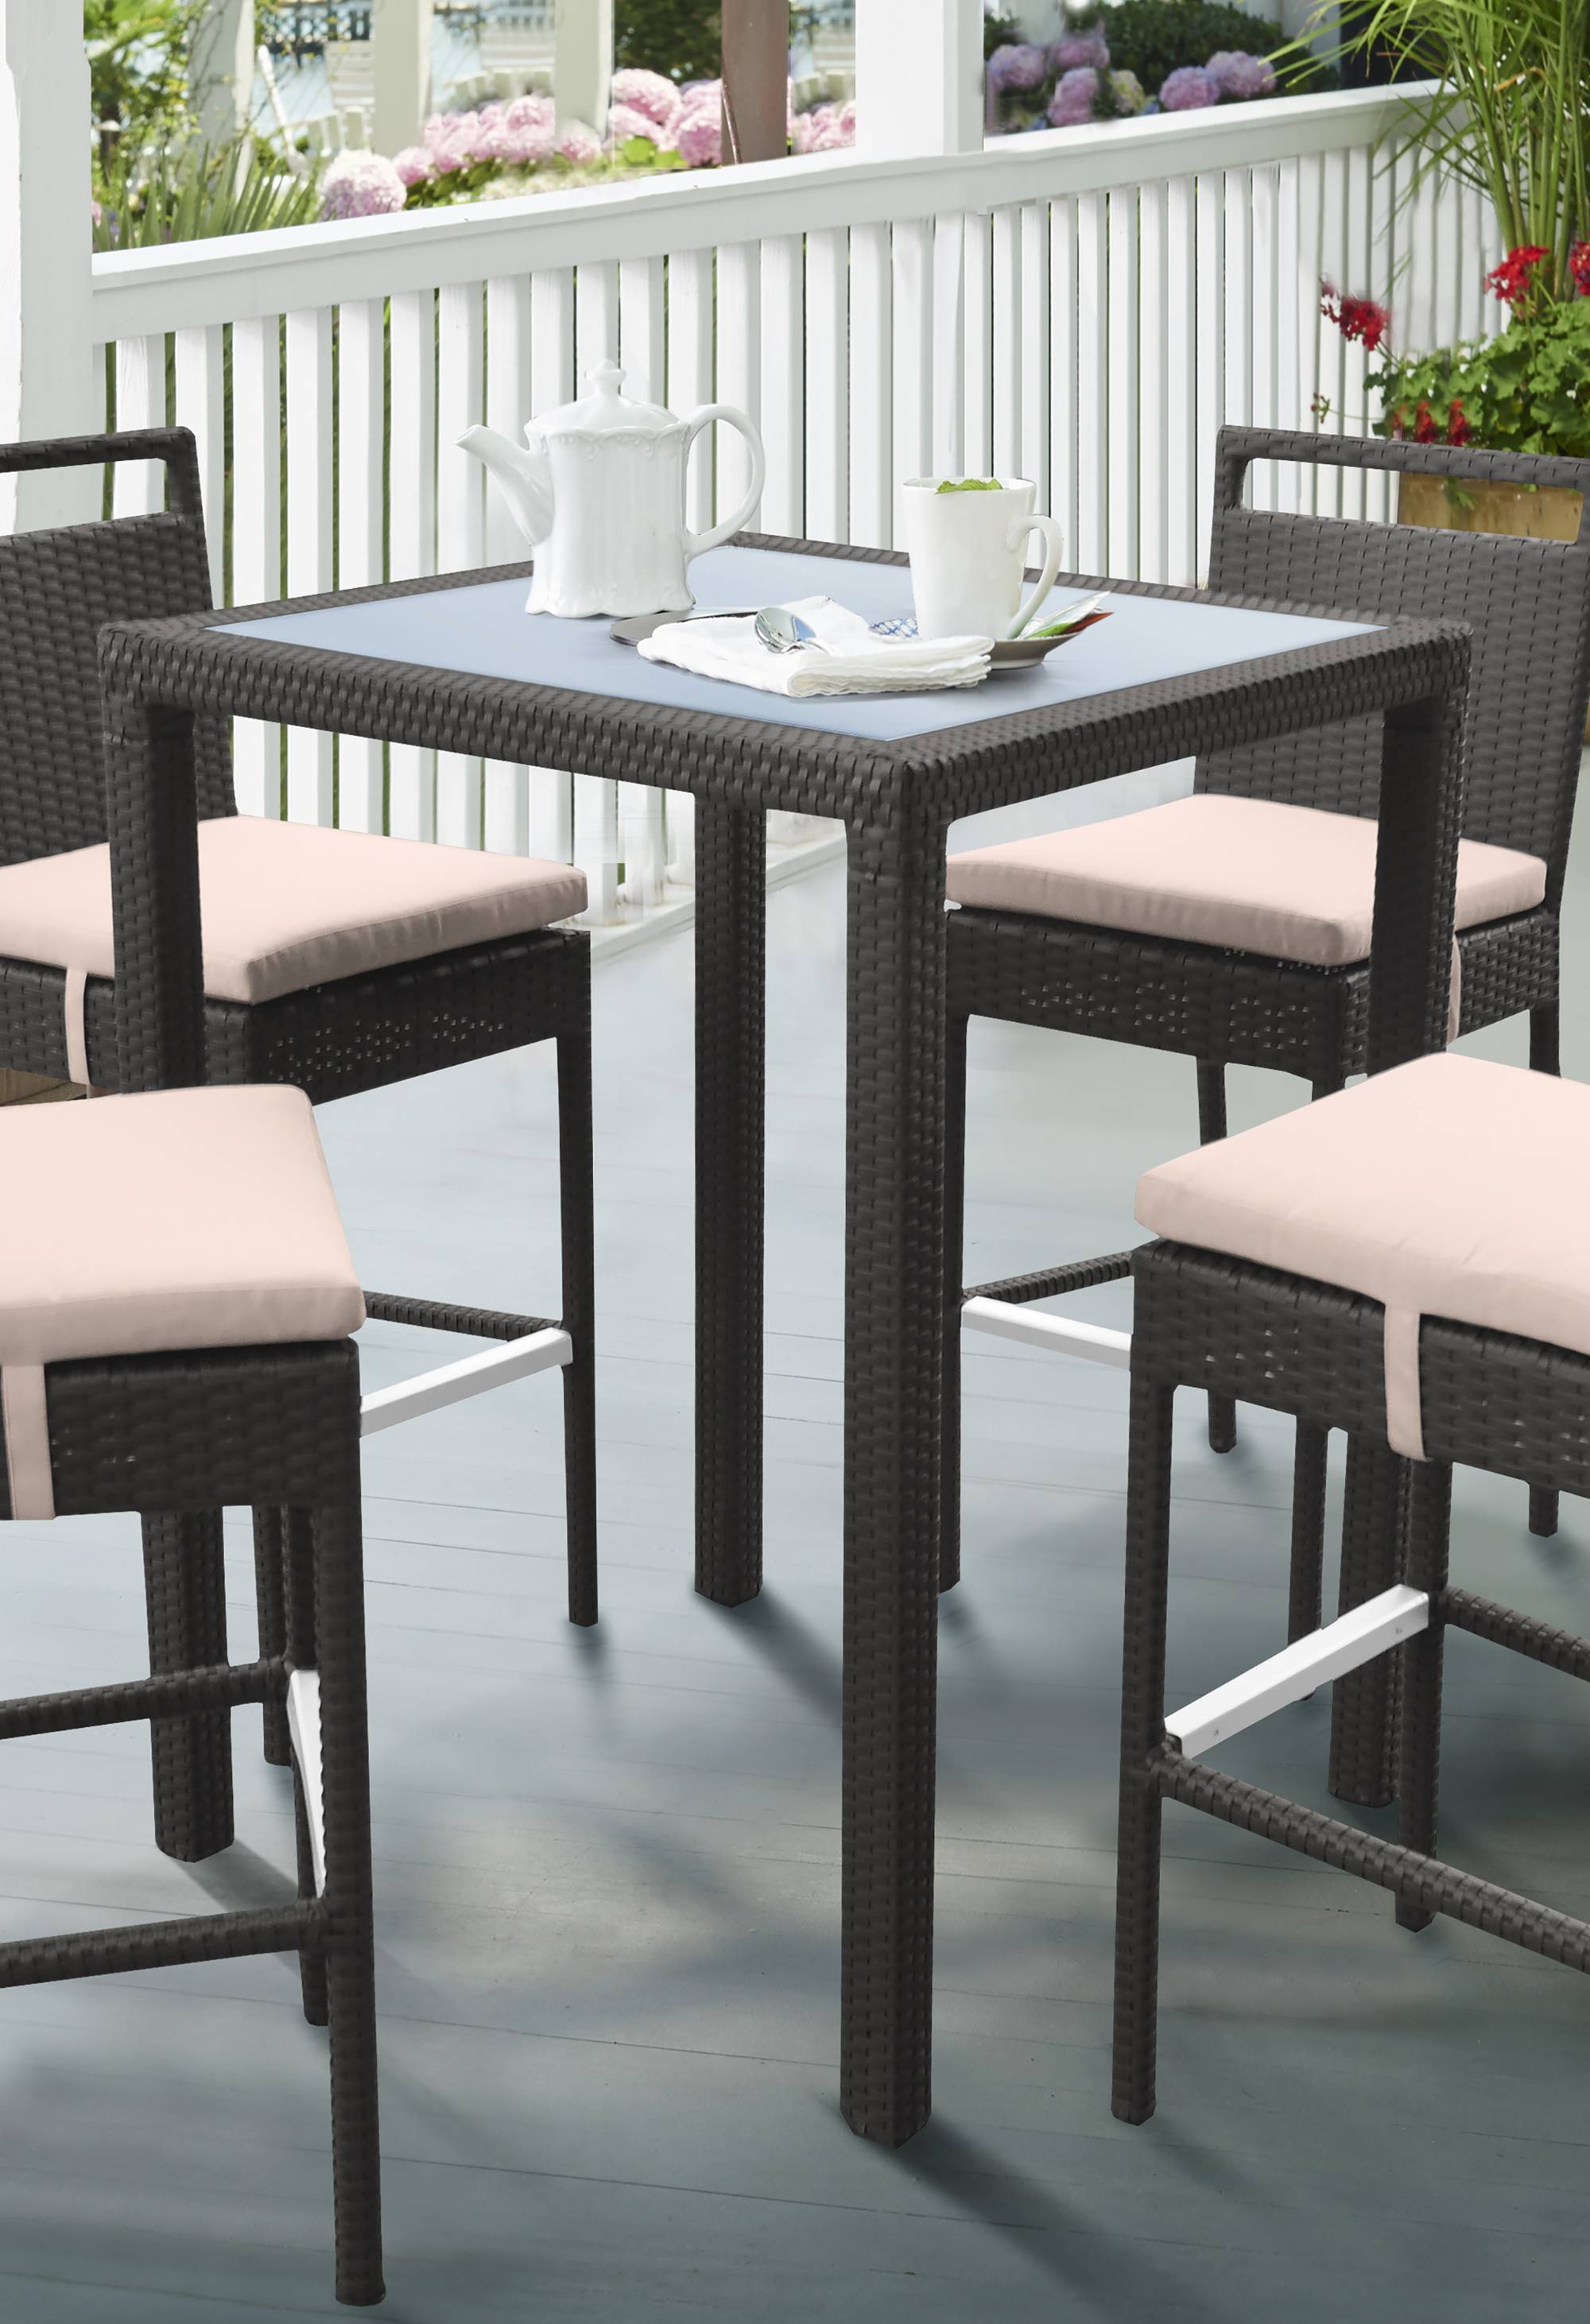 Armen Living Tropez Outdoor Patio Wicker�Pub Table with Black�Glass Top by Armen Living